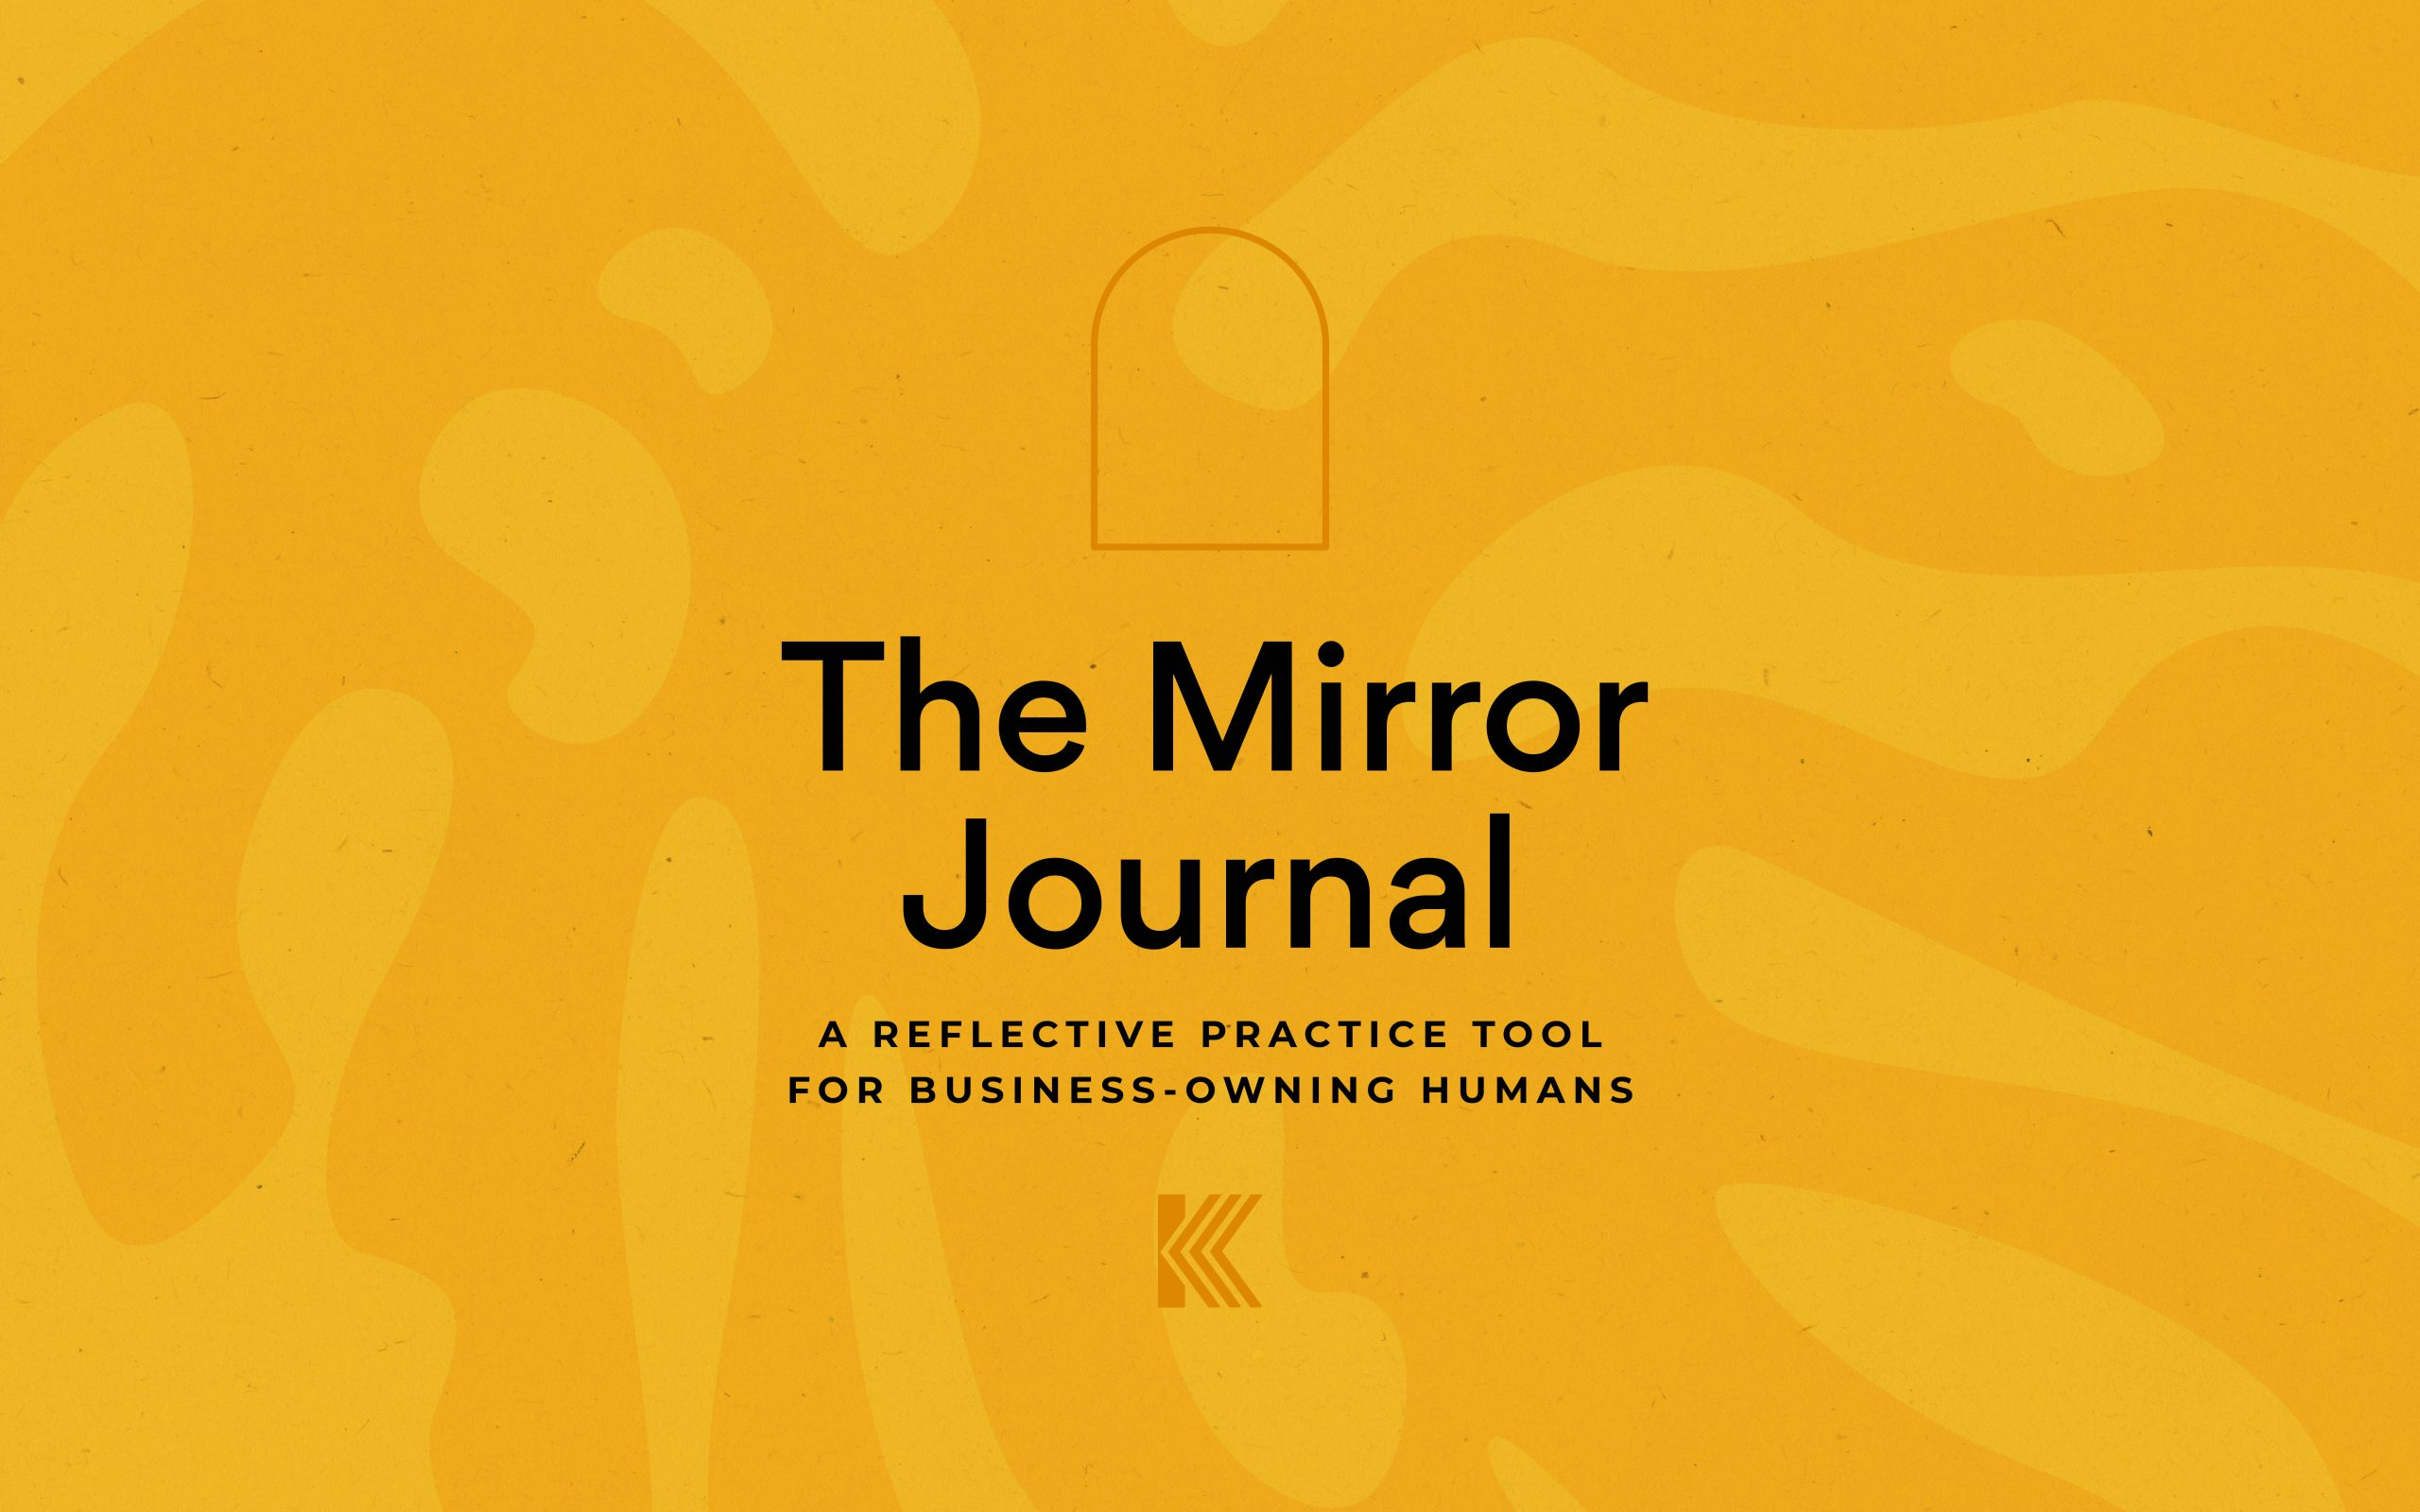 Opening cover image element of The Mirror Journal- a reflective practice tool for business-owning humans